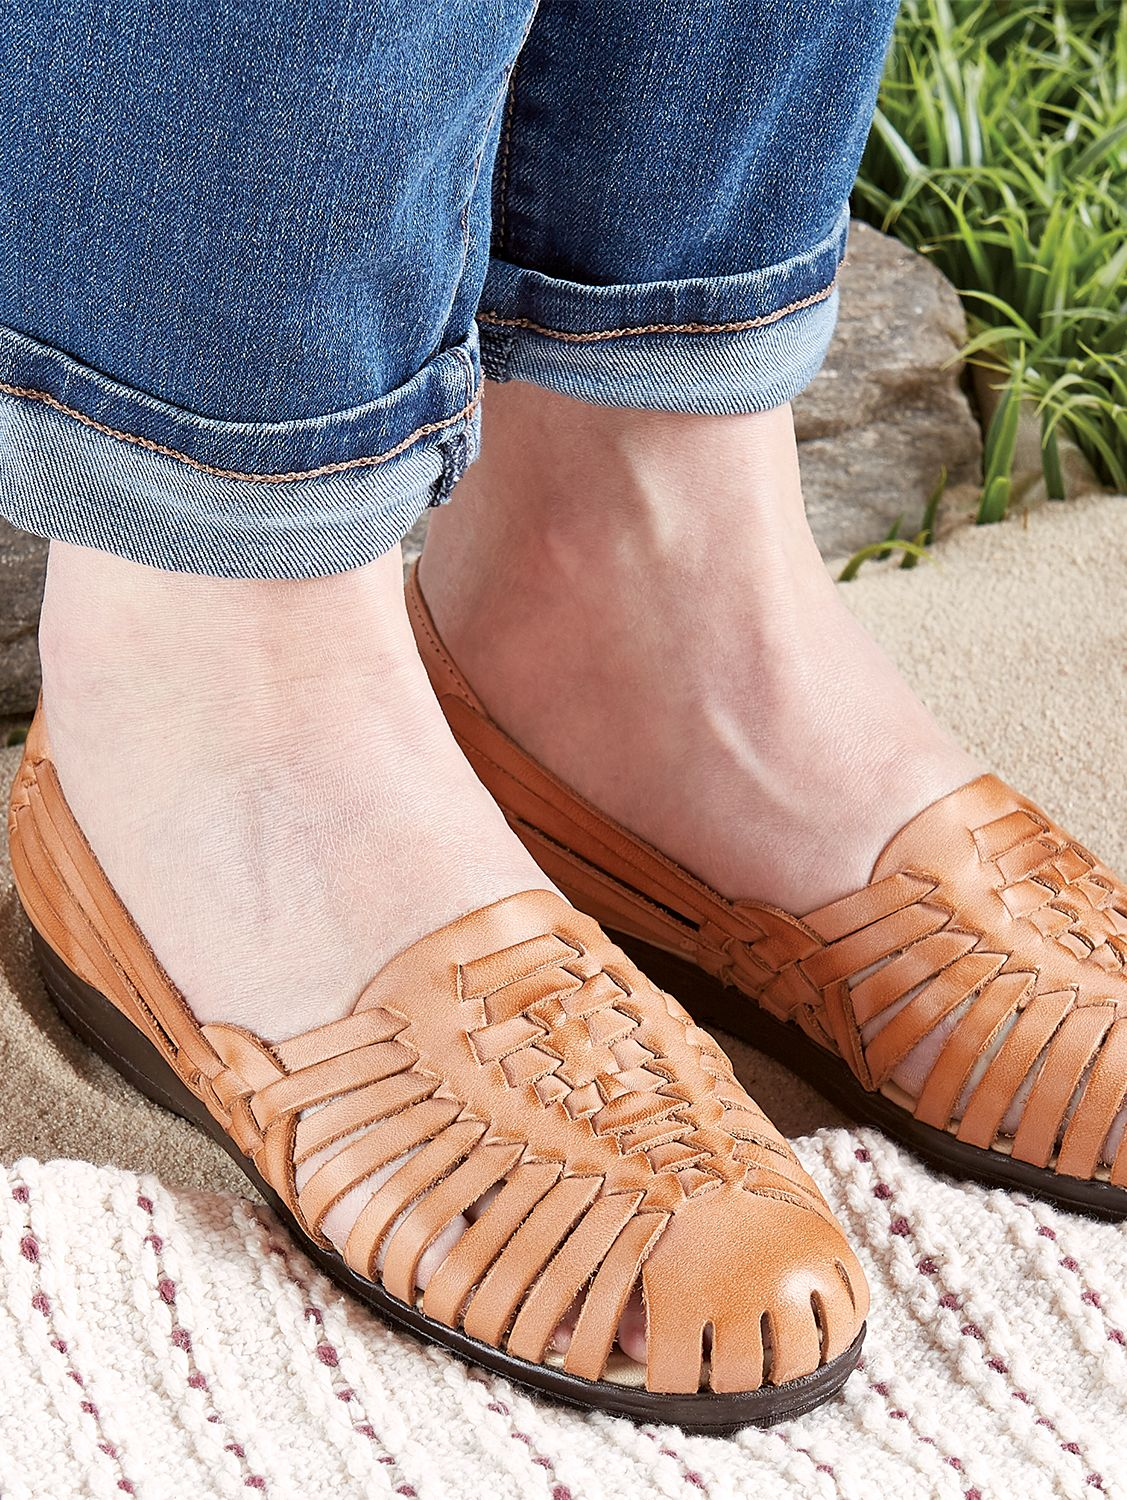 d05613f791f6 Leather Huarache Sandals With Memory Foam Insoles